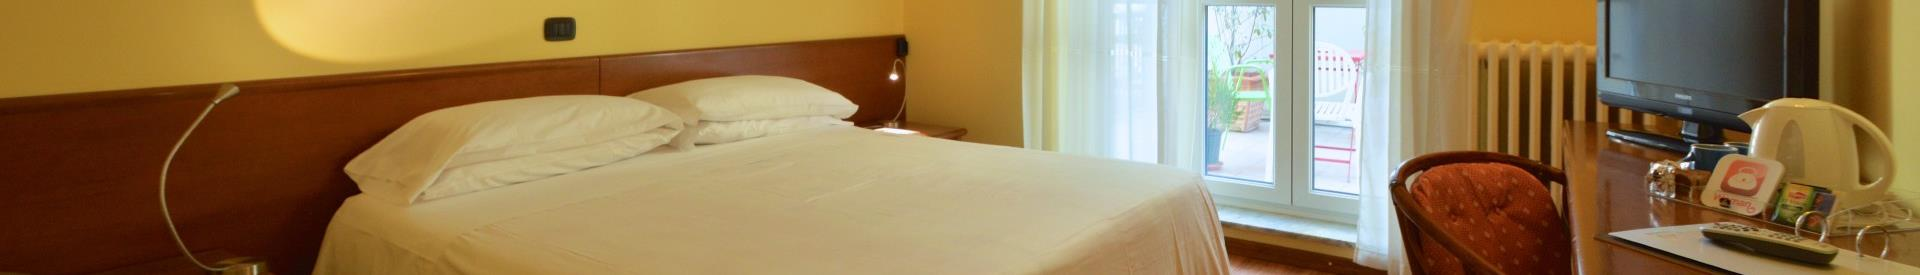 Book your room now in the best 3-star hotel in Turin